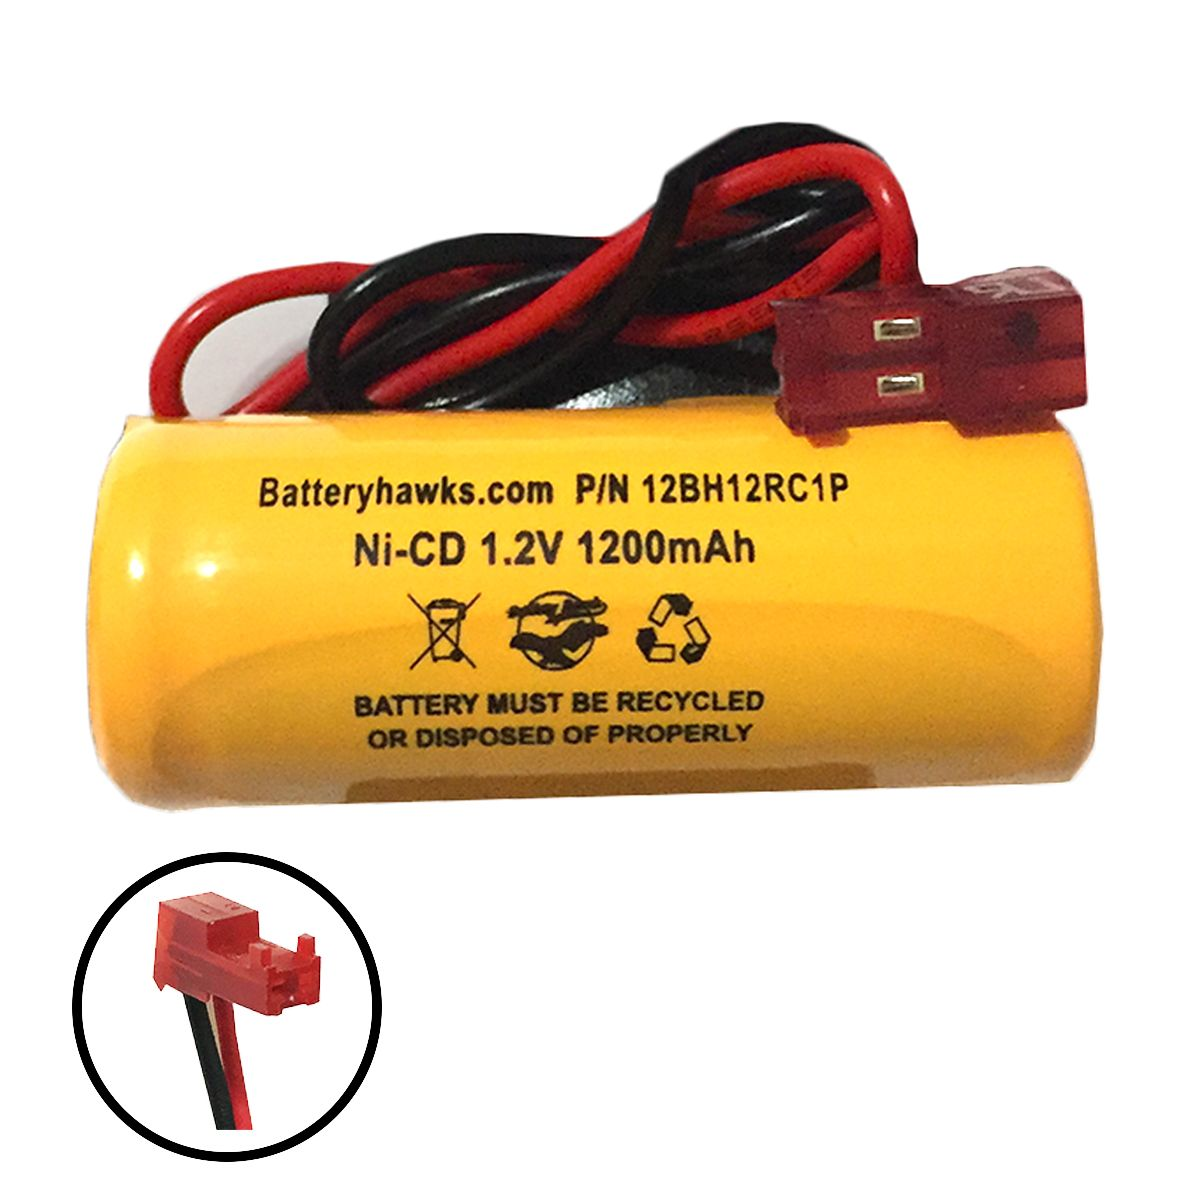 E E B C F D Fe D Bb Be Eef B B Dfe C F Aad B Cd Fe X X on Emergency Exit Sign Battery Replacement